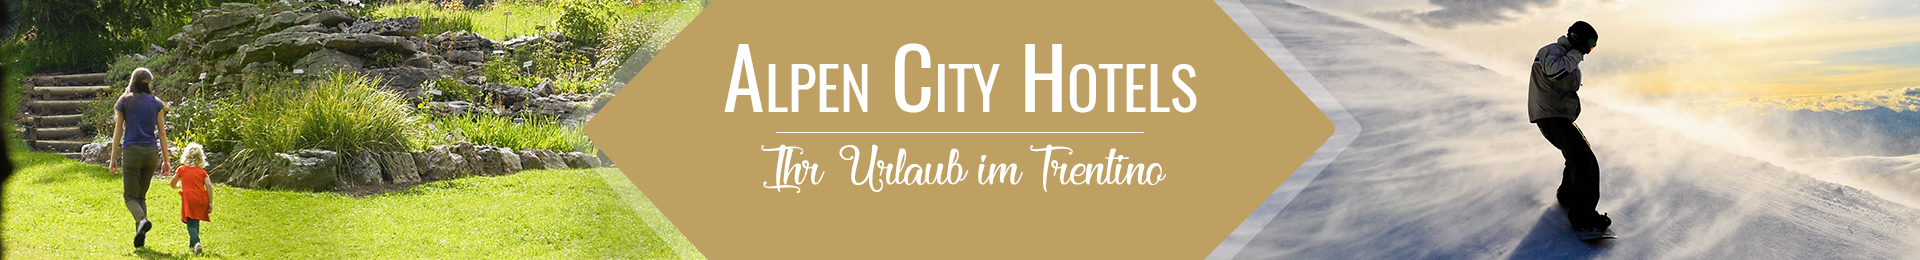 banner alpen city hotels estate inverno de